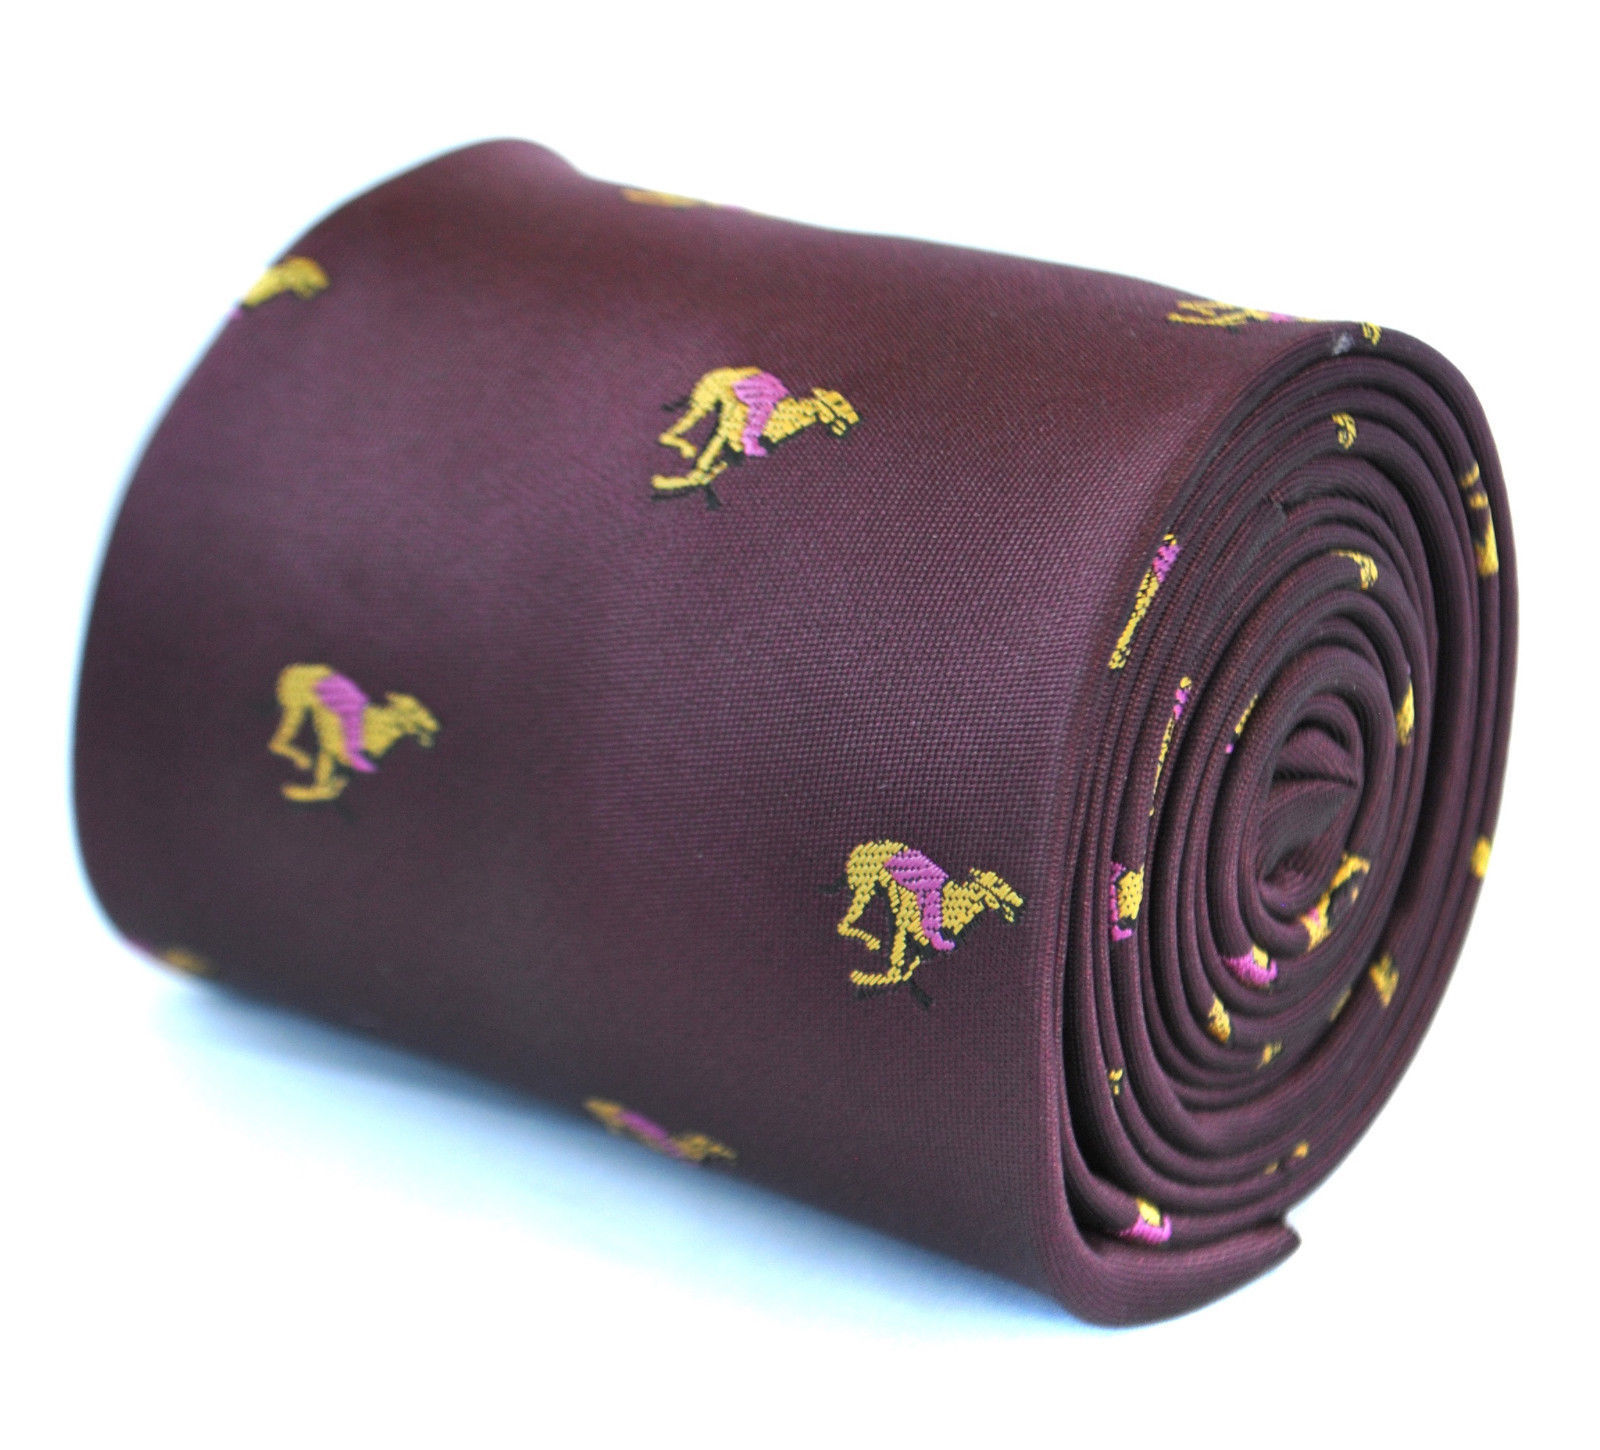 Frederick Thomas maroon with racing greyhound dog tie FT1929